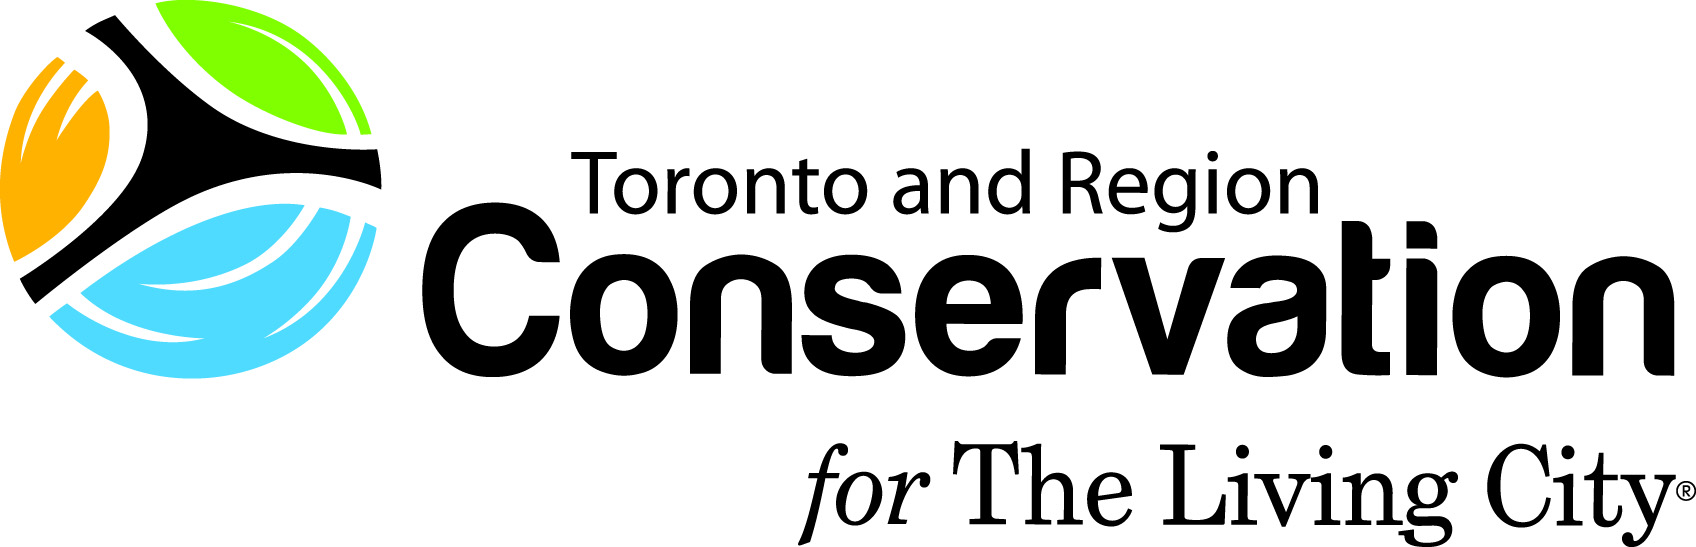 TRCA-logo2011_WORKING